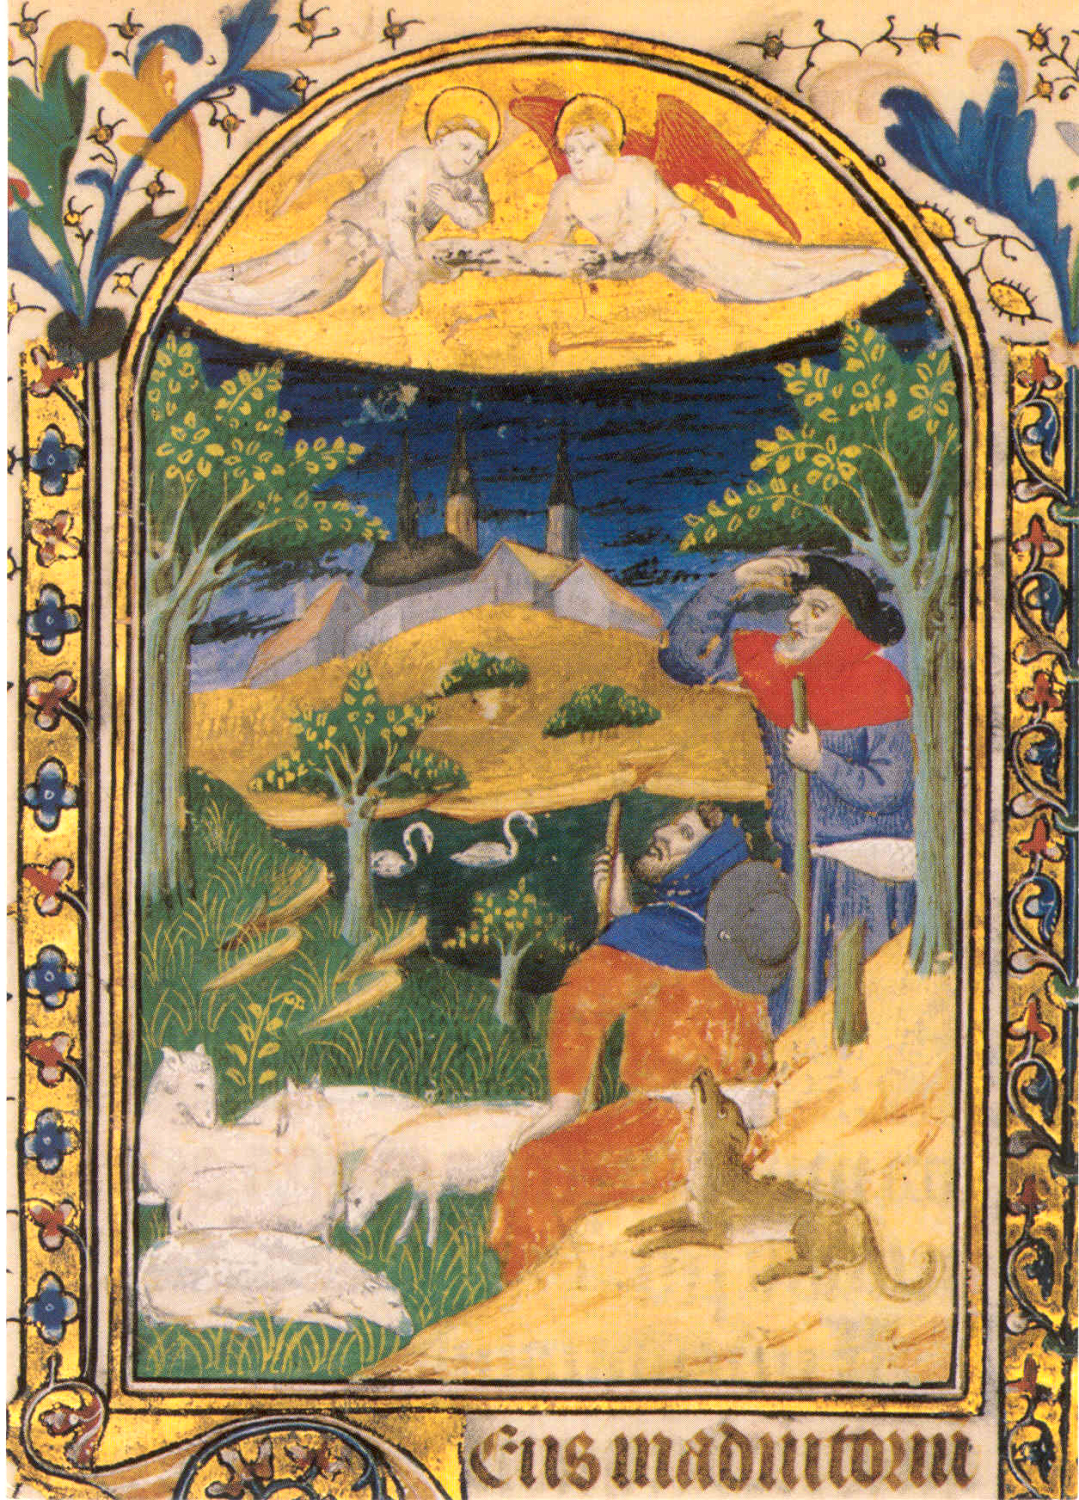 This illustration of the Annunciation to the Shepherds comes from a 15th-century Flemish Book of Hours in the collection of Glencairn Museum (07.MS.639). Books of Hours were prayer books for the laity. Glencairn's book includes a number of other pictures from the Christmas story, including the Annunciation to Mary, the Visitation of Mary to Elizabeth, the Nativity, the Adoration of the Wise Men, the Presentation in the Temple, the Massacre of the Innocents, and the Flight into Egypt.